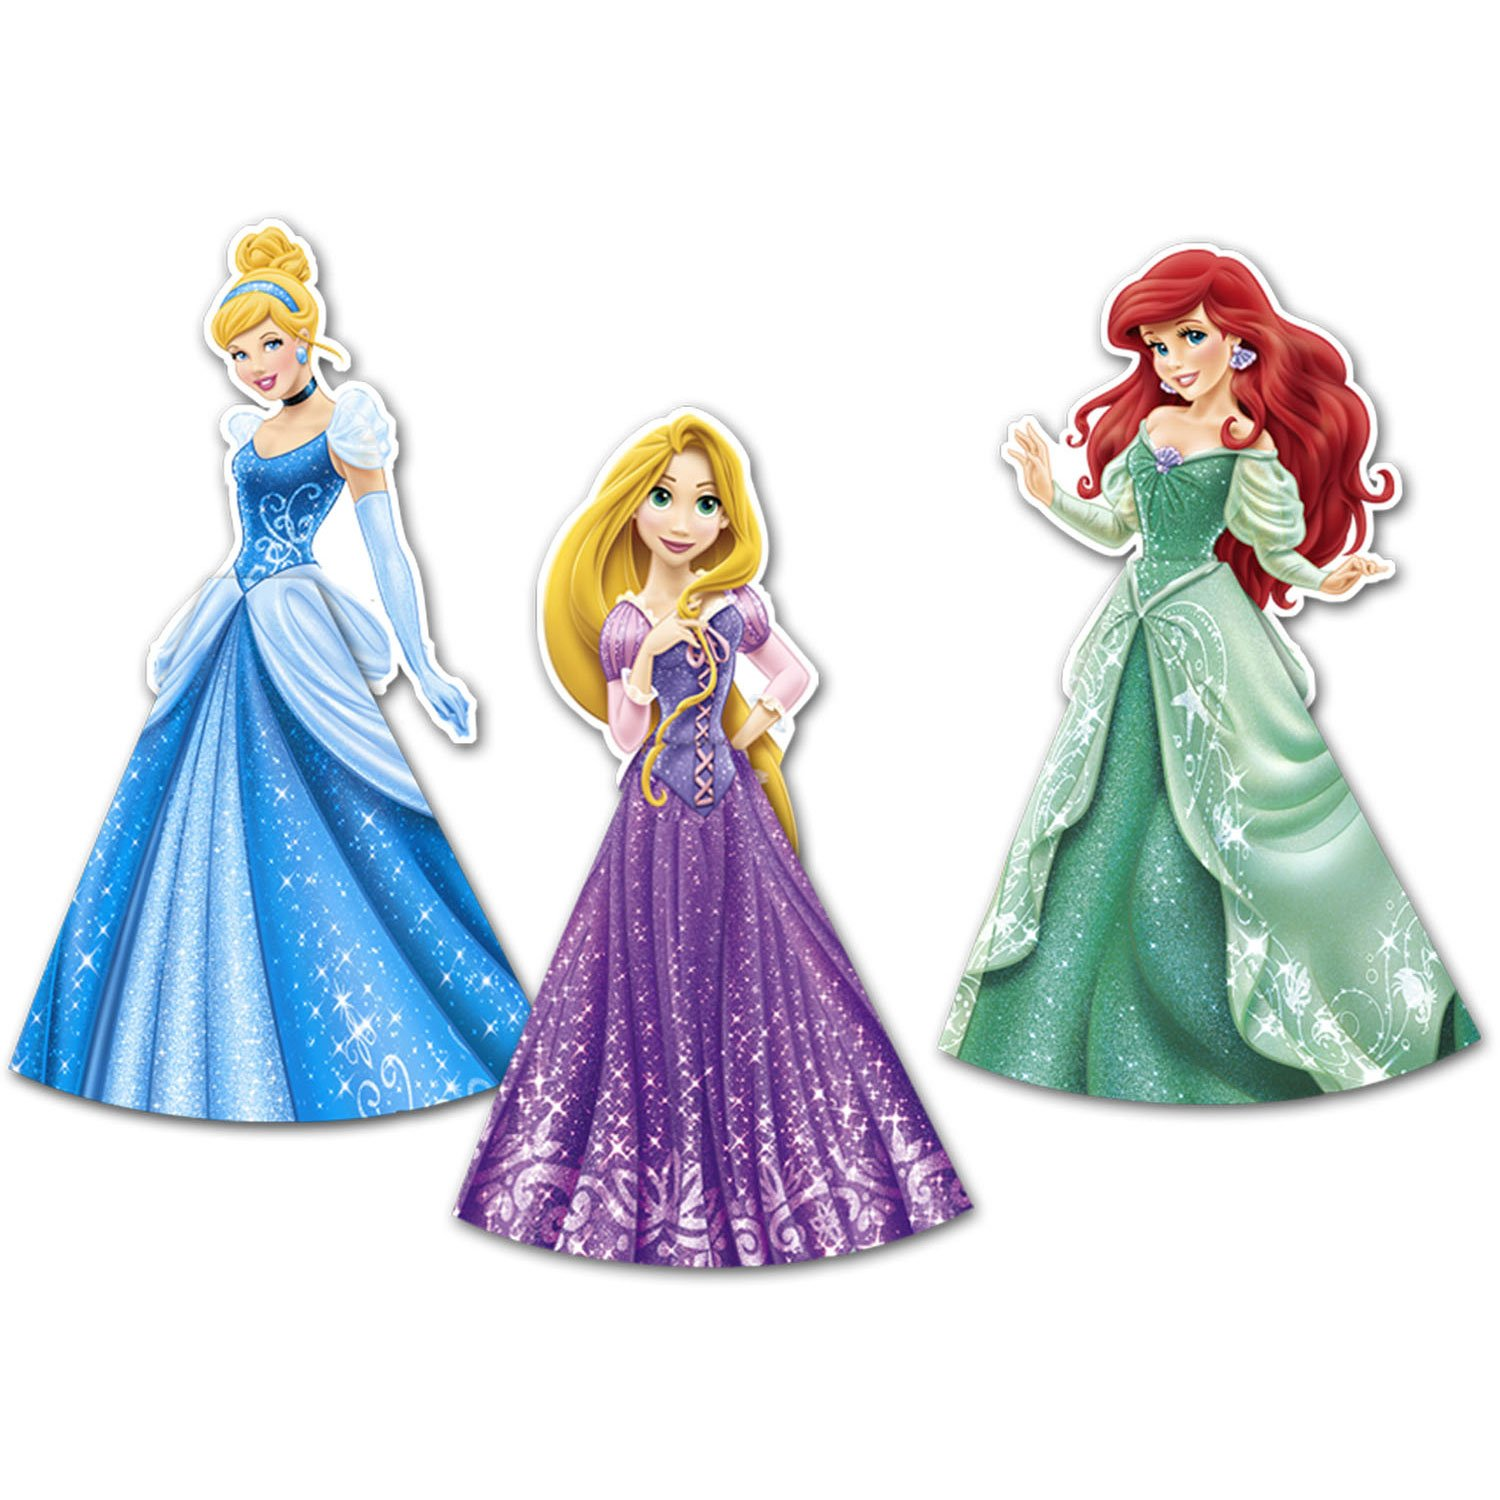 Amazon.com: Disney Princess Royal Event Centerpiece: Toys & Games